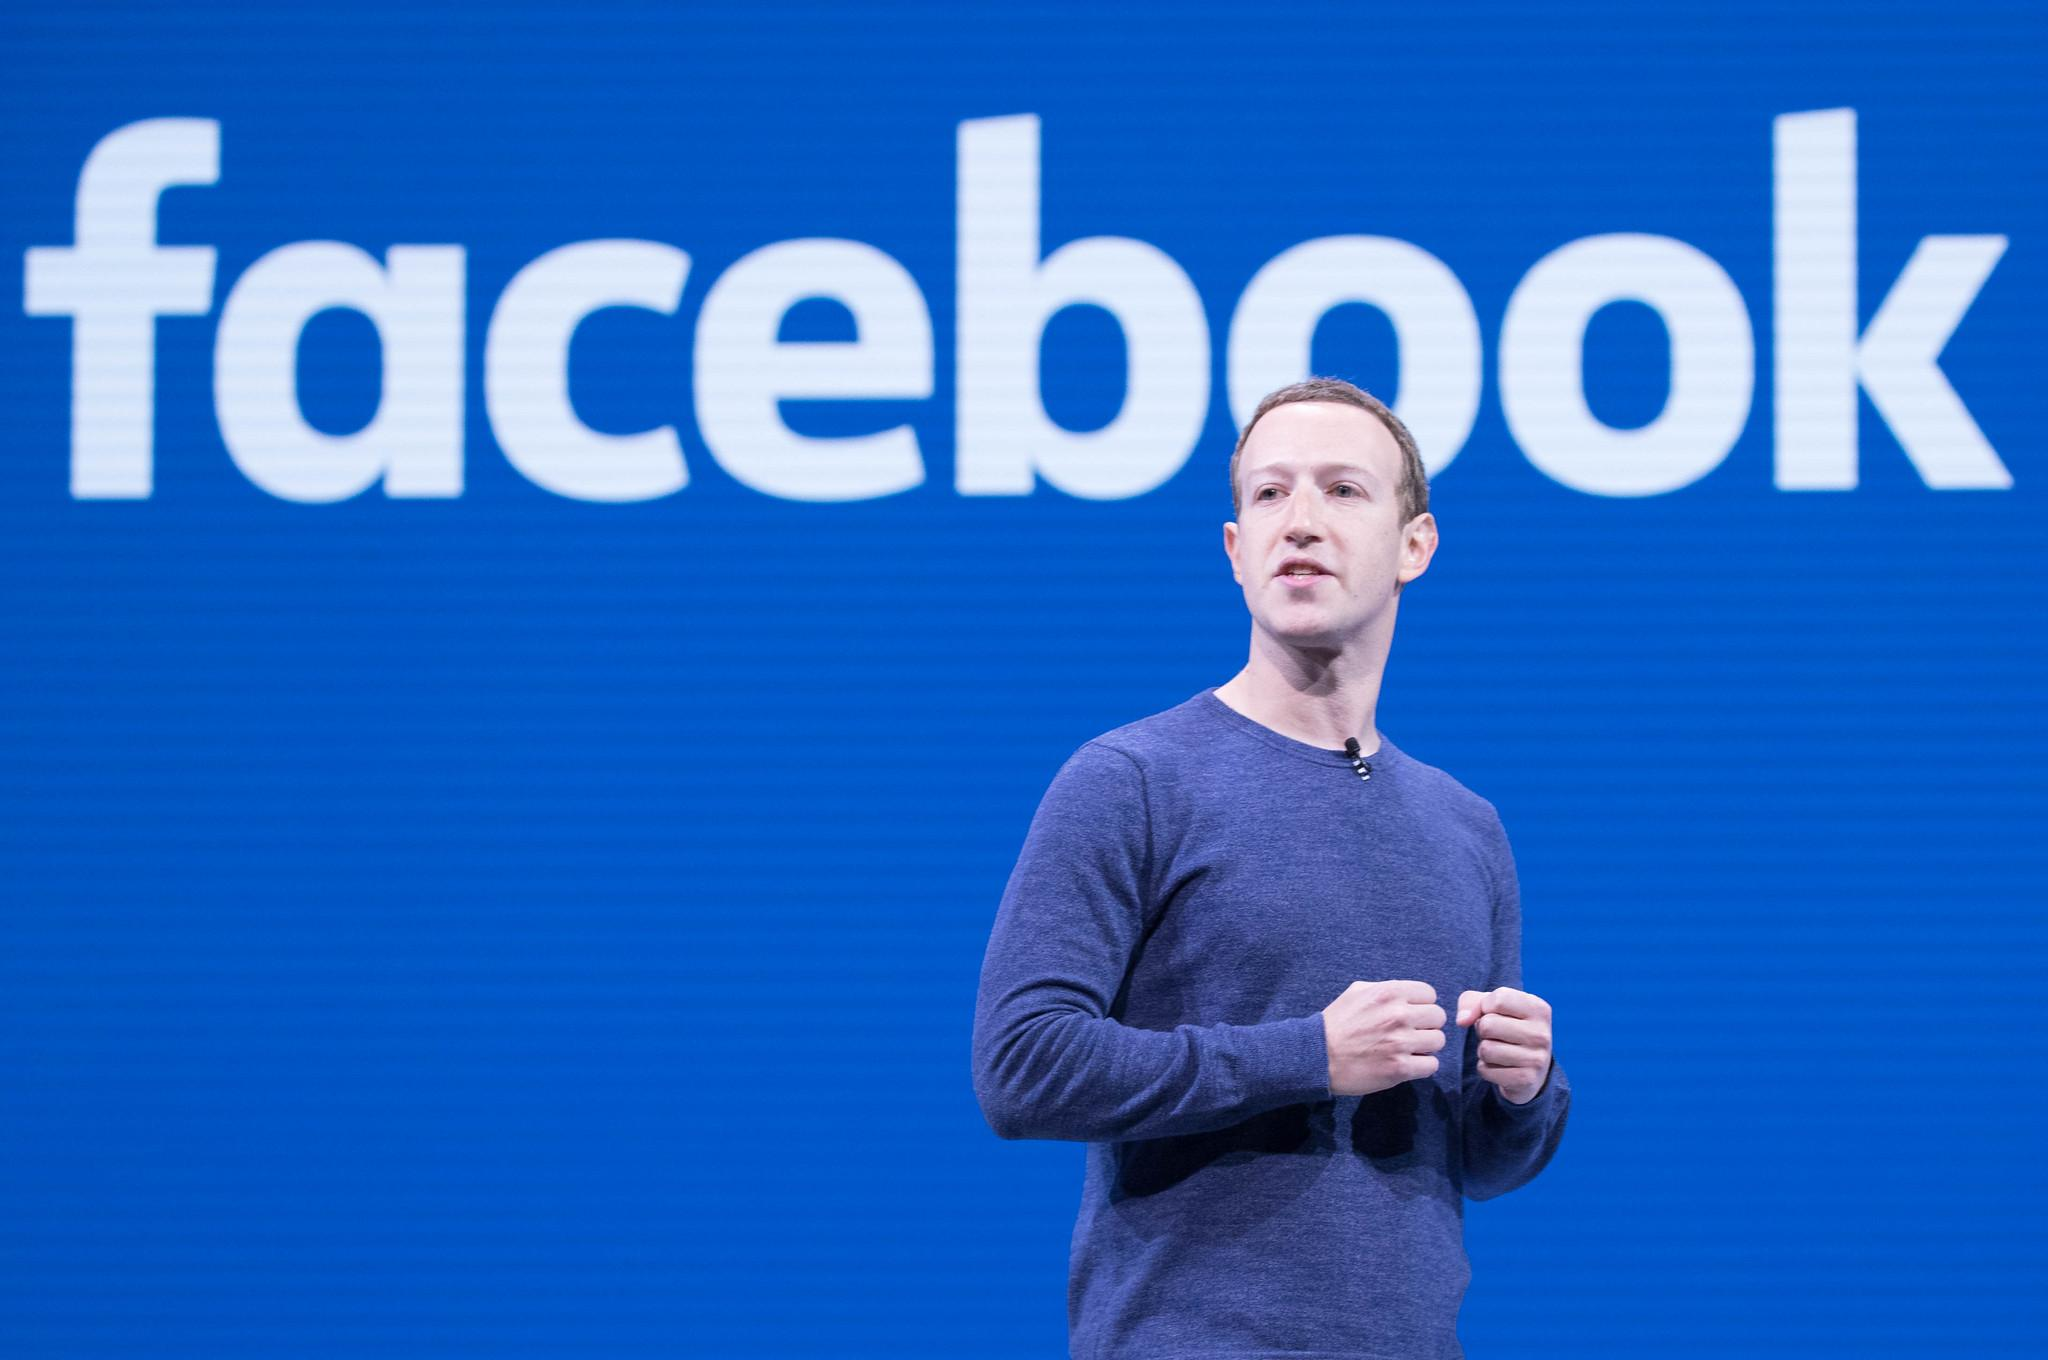 Easing liability rules for Twitter, Facebook could backfire on U.S.: Geist